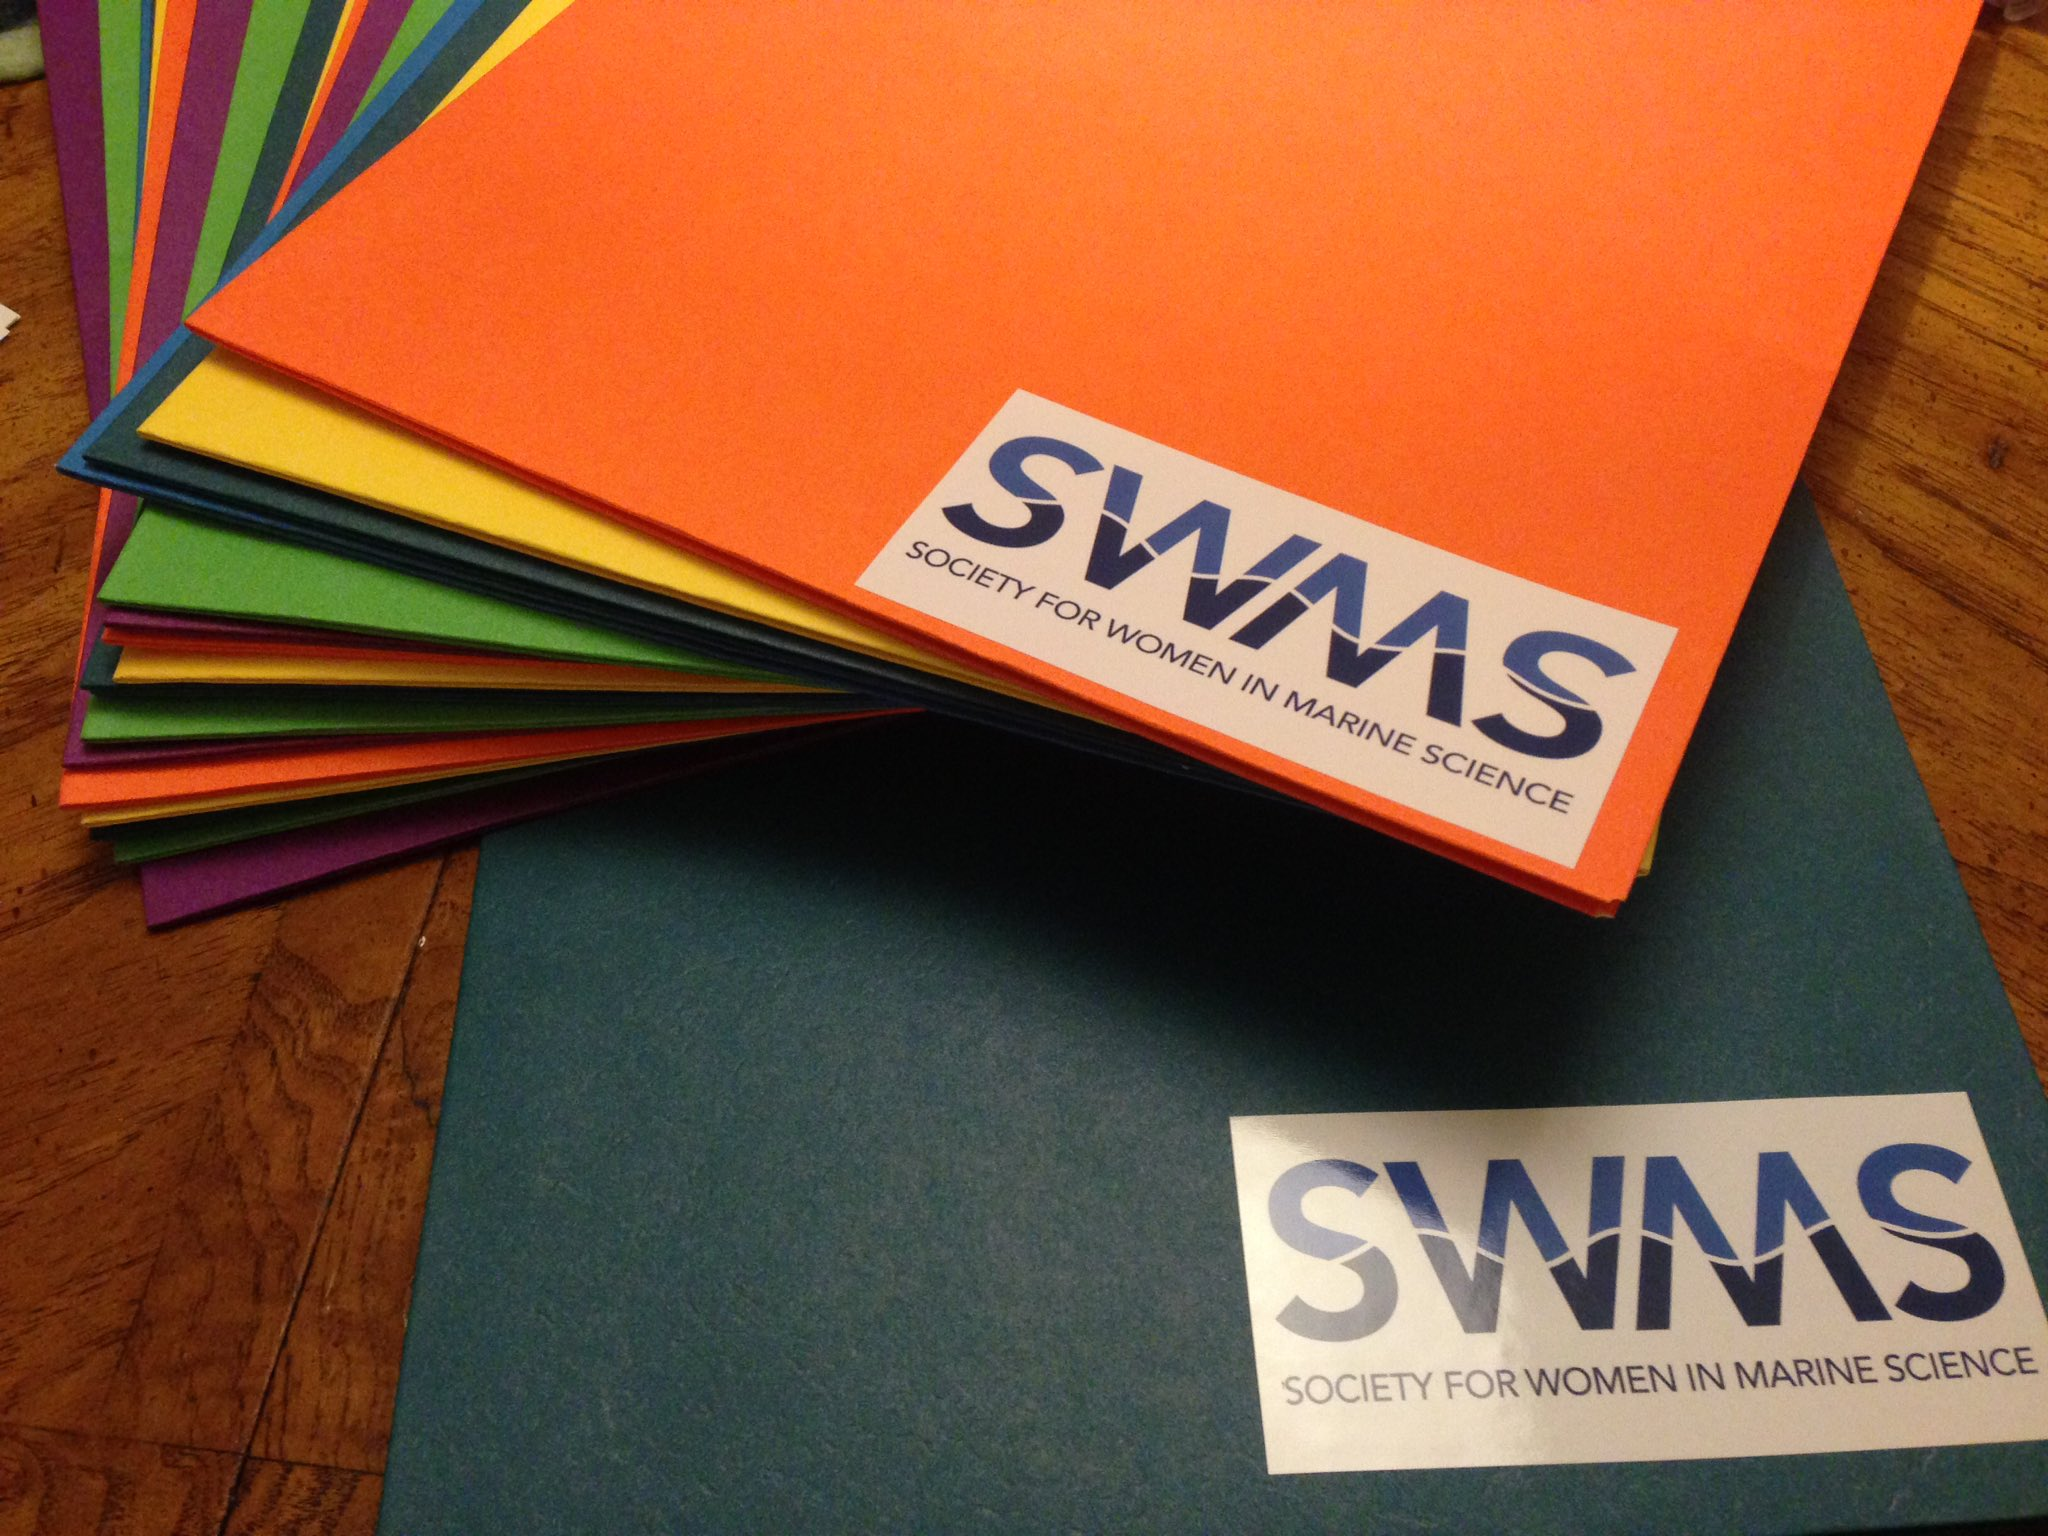 We're ready....! @SWMStweets #SWMS16 https://t.co/bwxHc8NST6